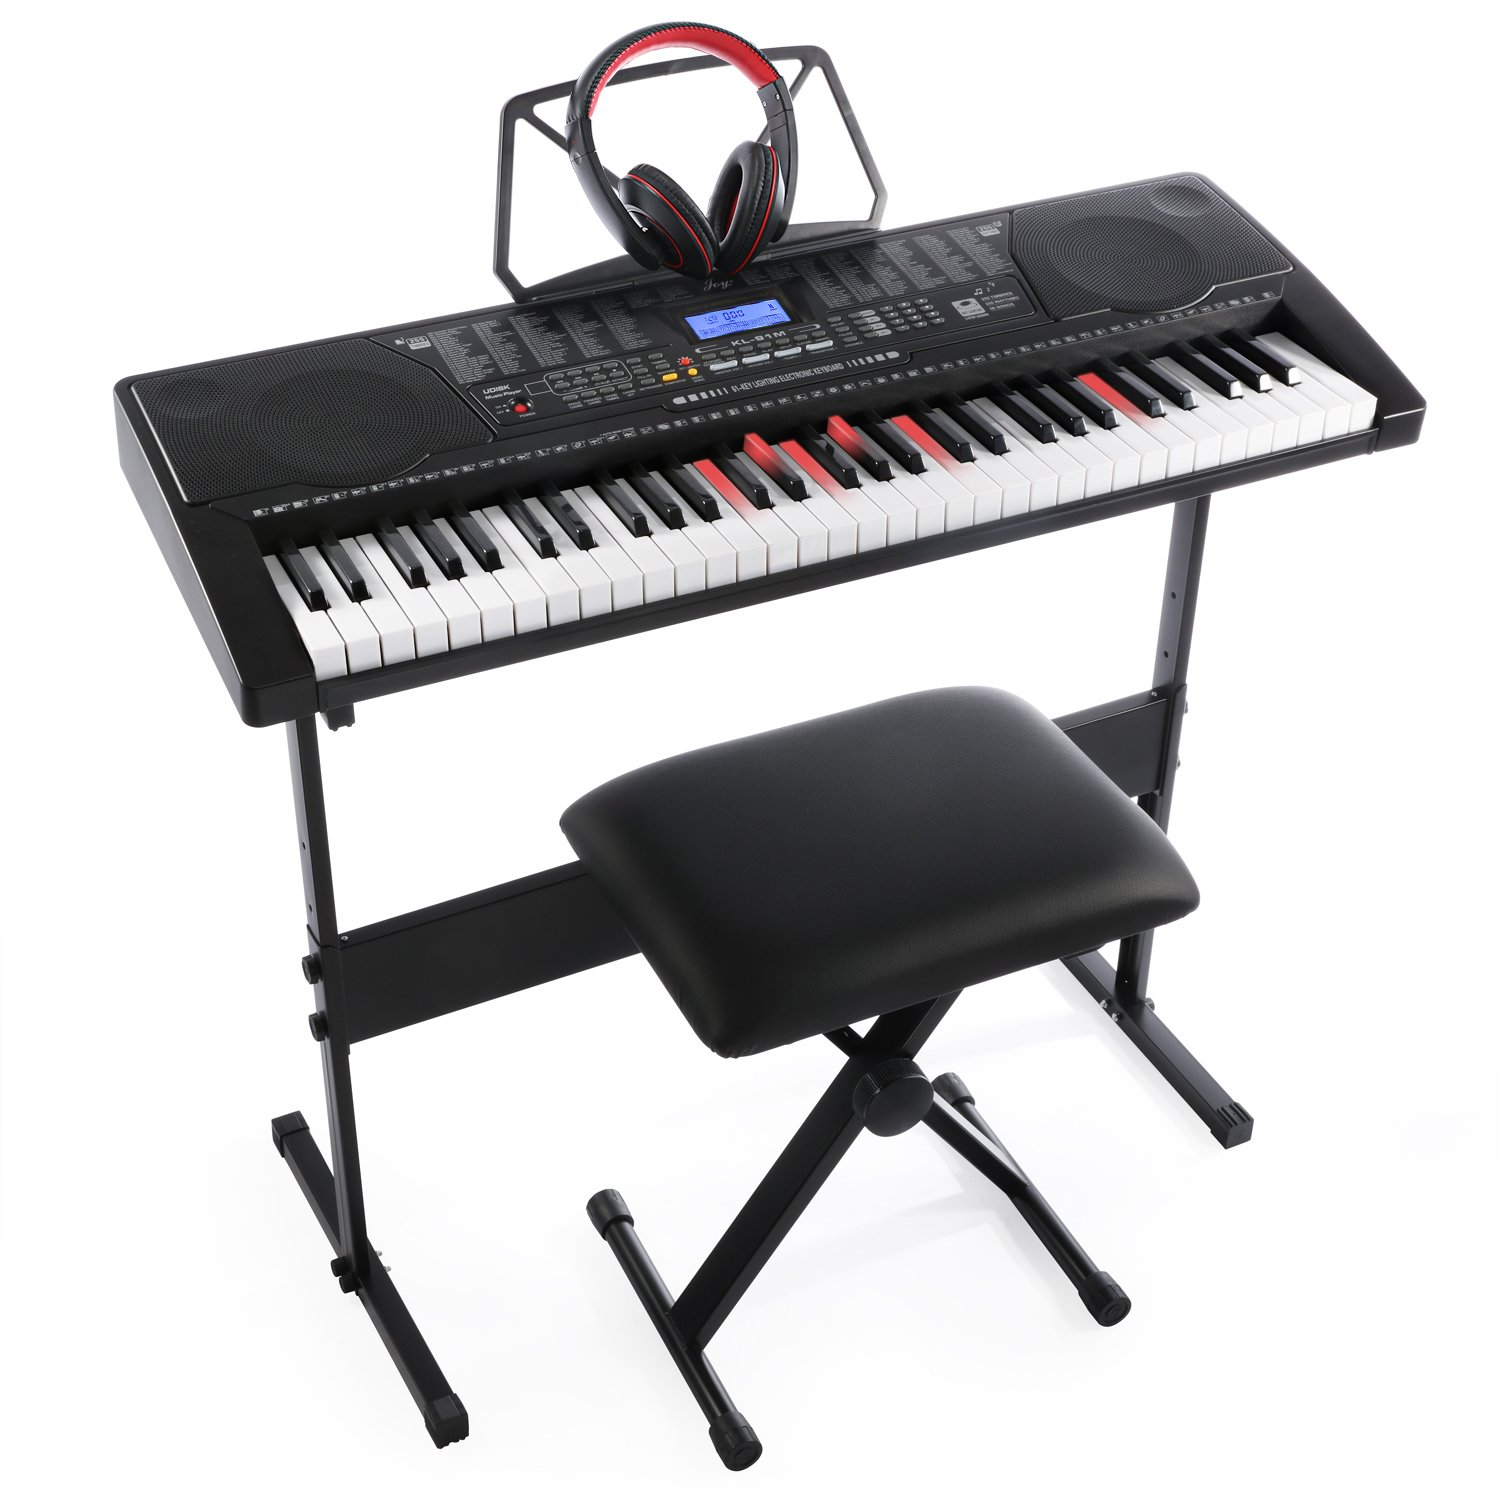 Joy 61-Key Lighting Keyboard with USB Music Player Function, Including Headphone, Stand & Stool (Kl-91MKit) by Joy